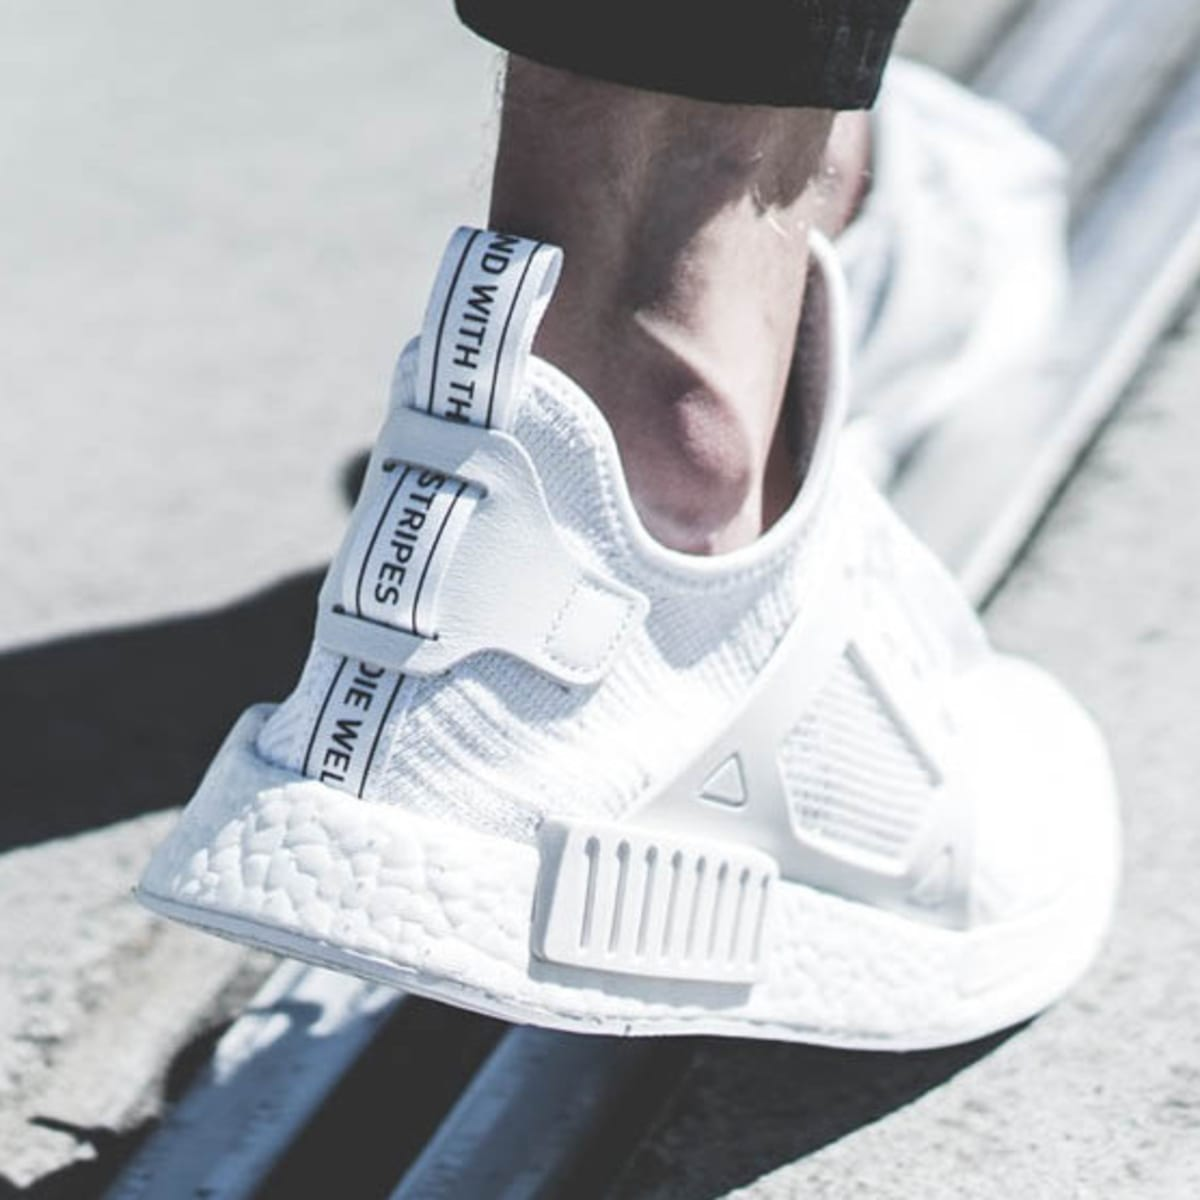 There Are Five Adidas Nmd Xr1 Colorways Launching On Black Friday